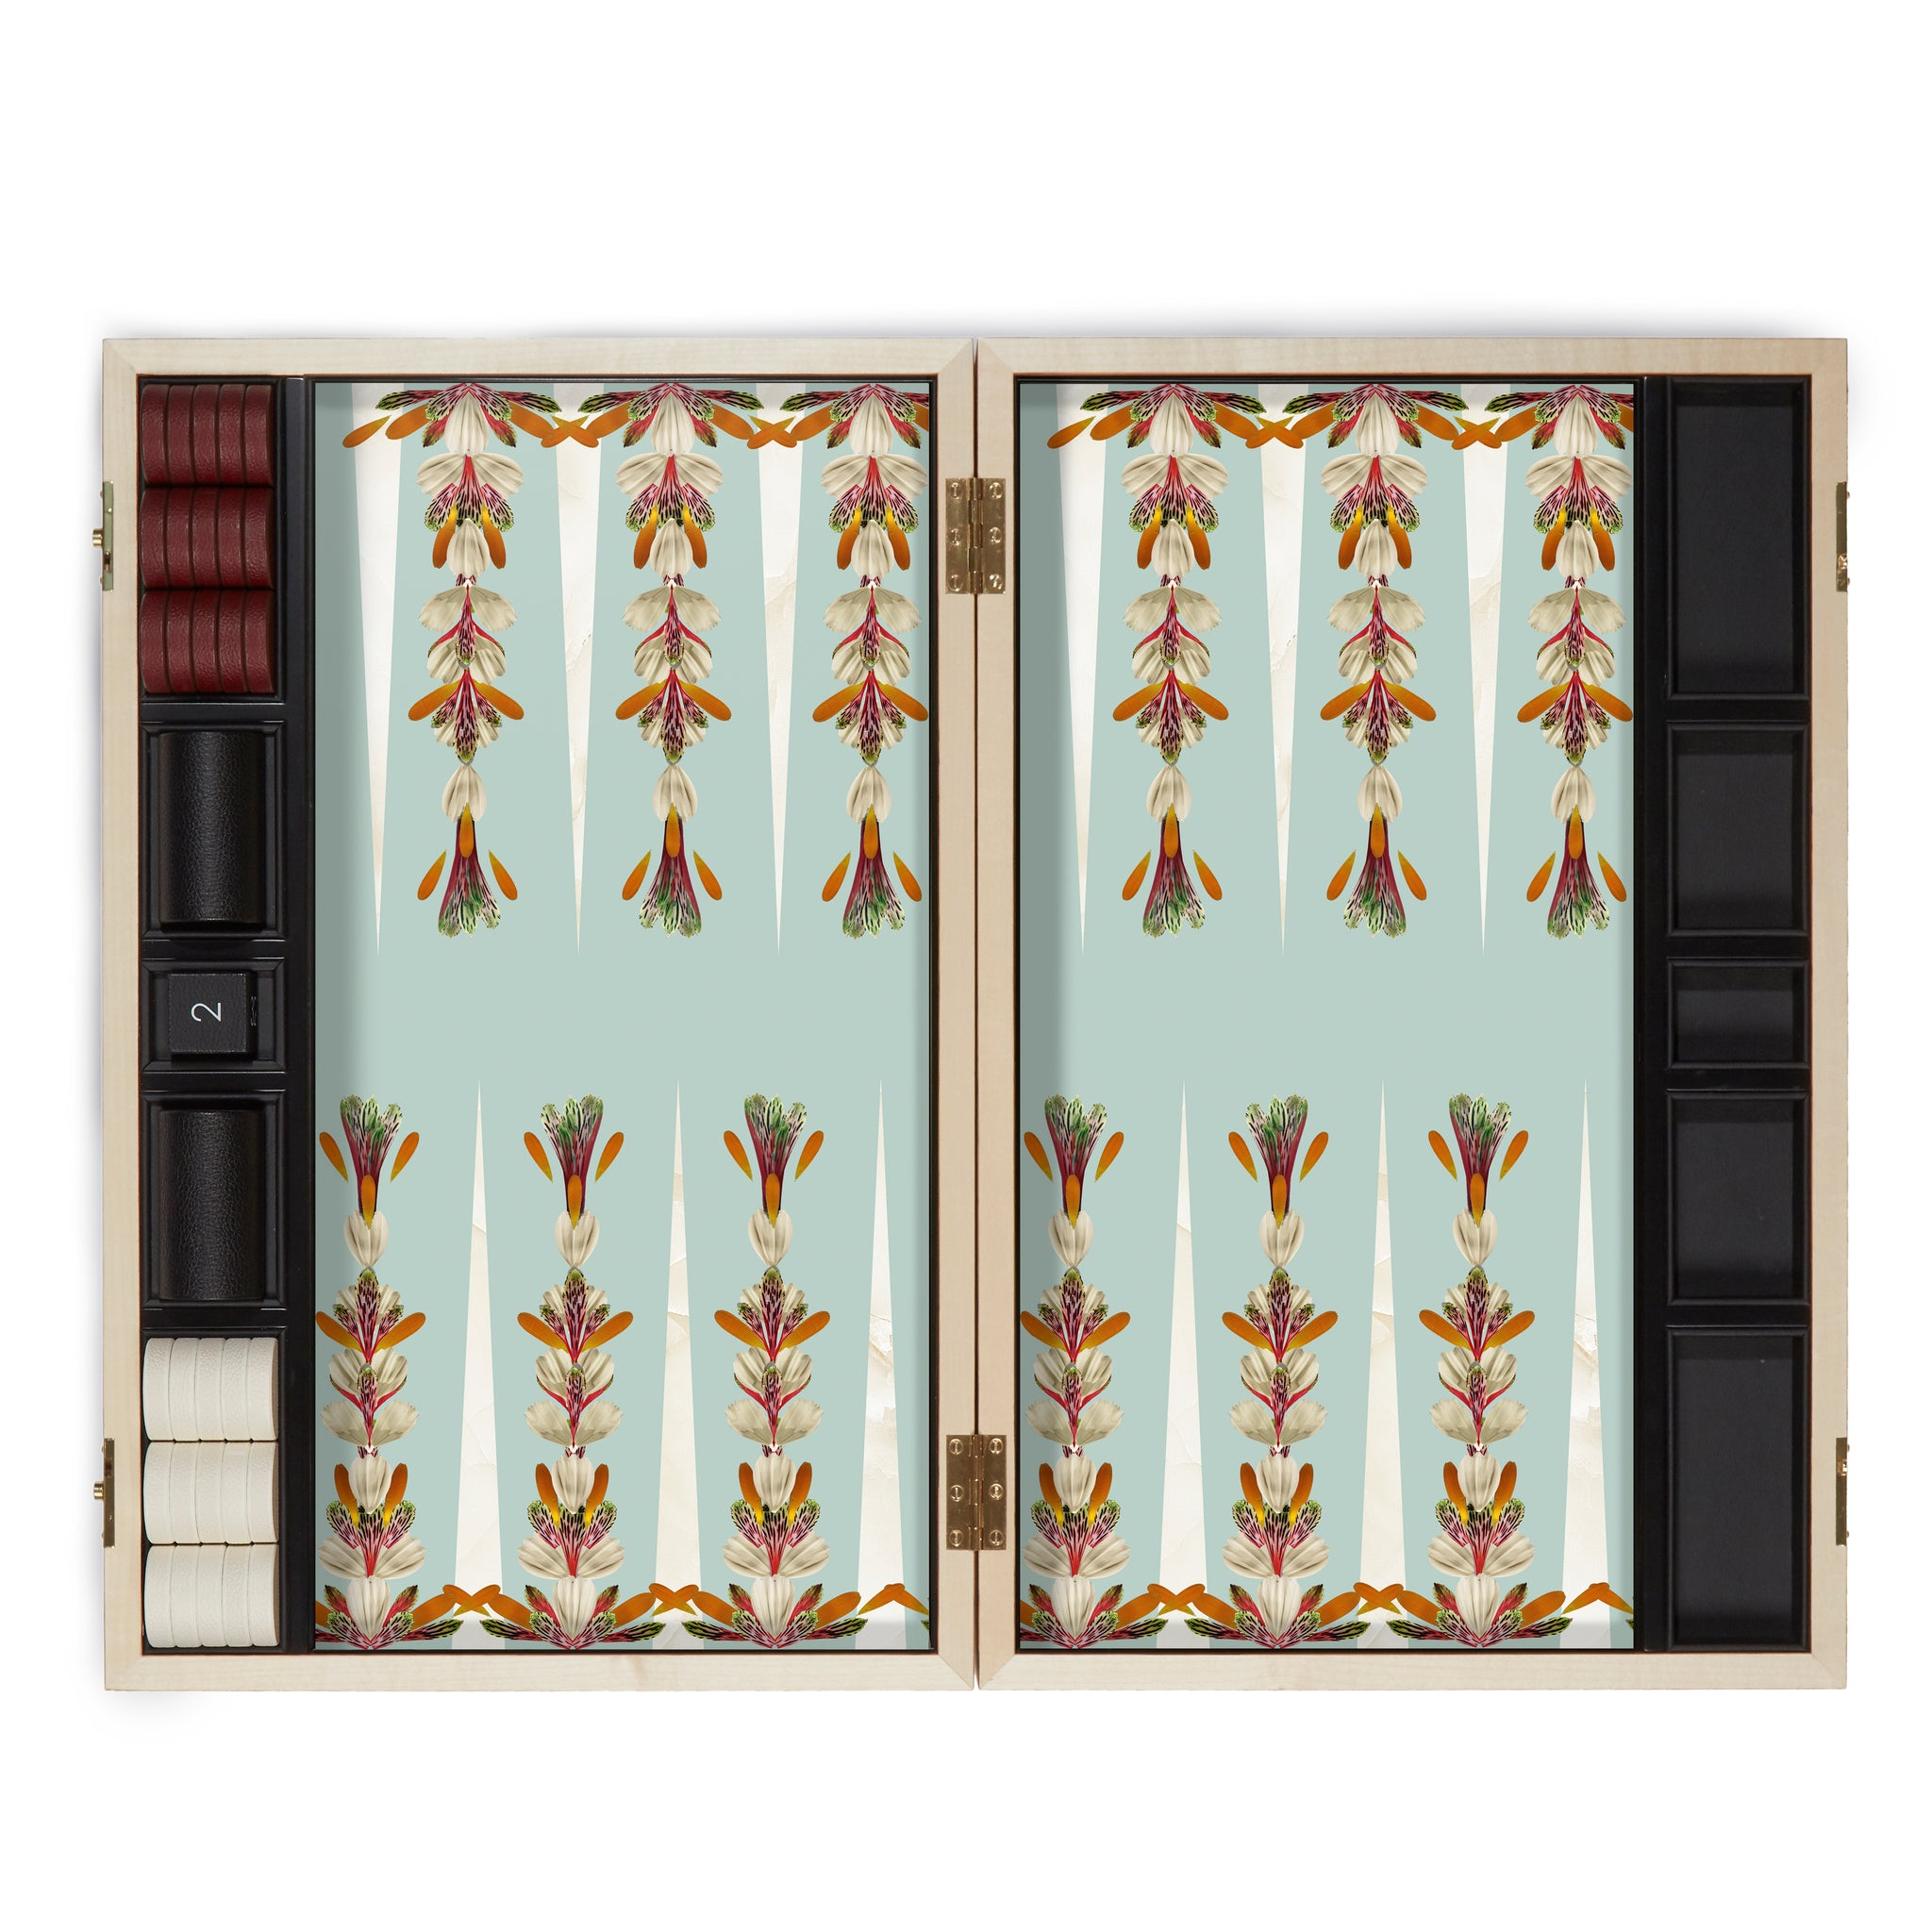 Petals Backgammon Set